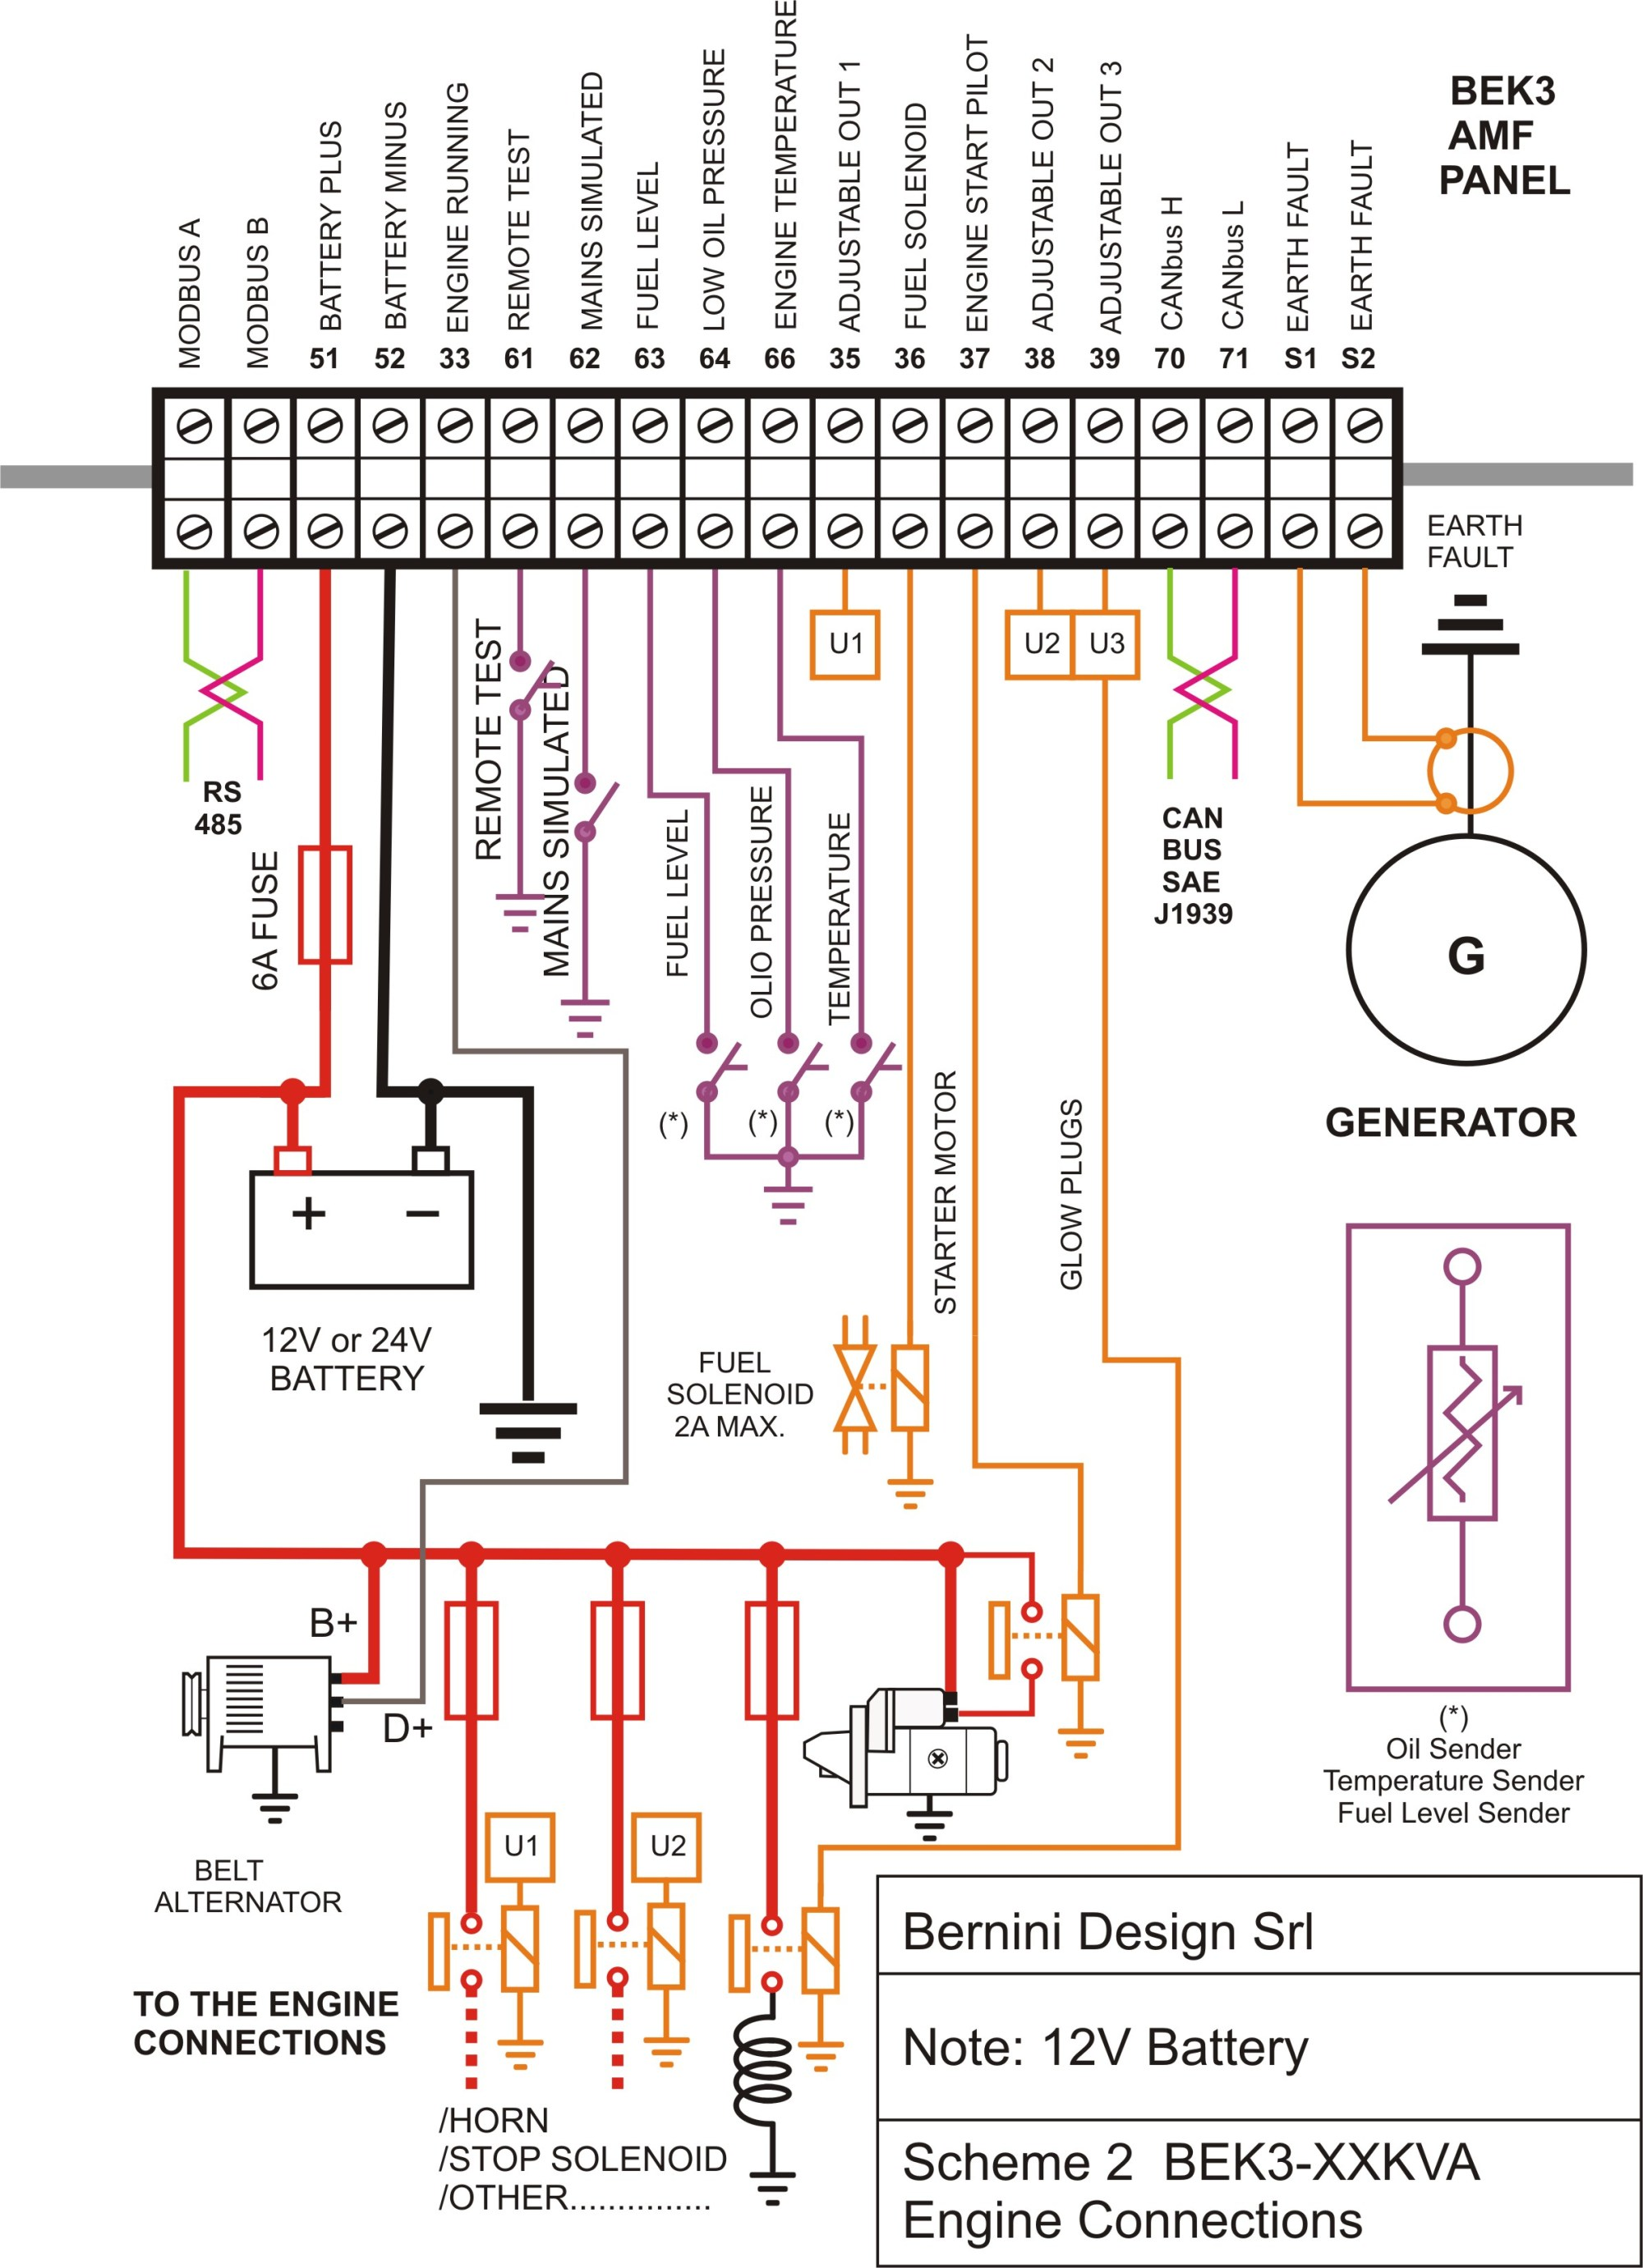 hight resolution of plc control panel wiring diagram pdf 2387x3295 car diagram electrical drawing basics pdf zen diagram